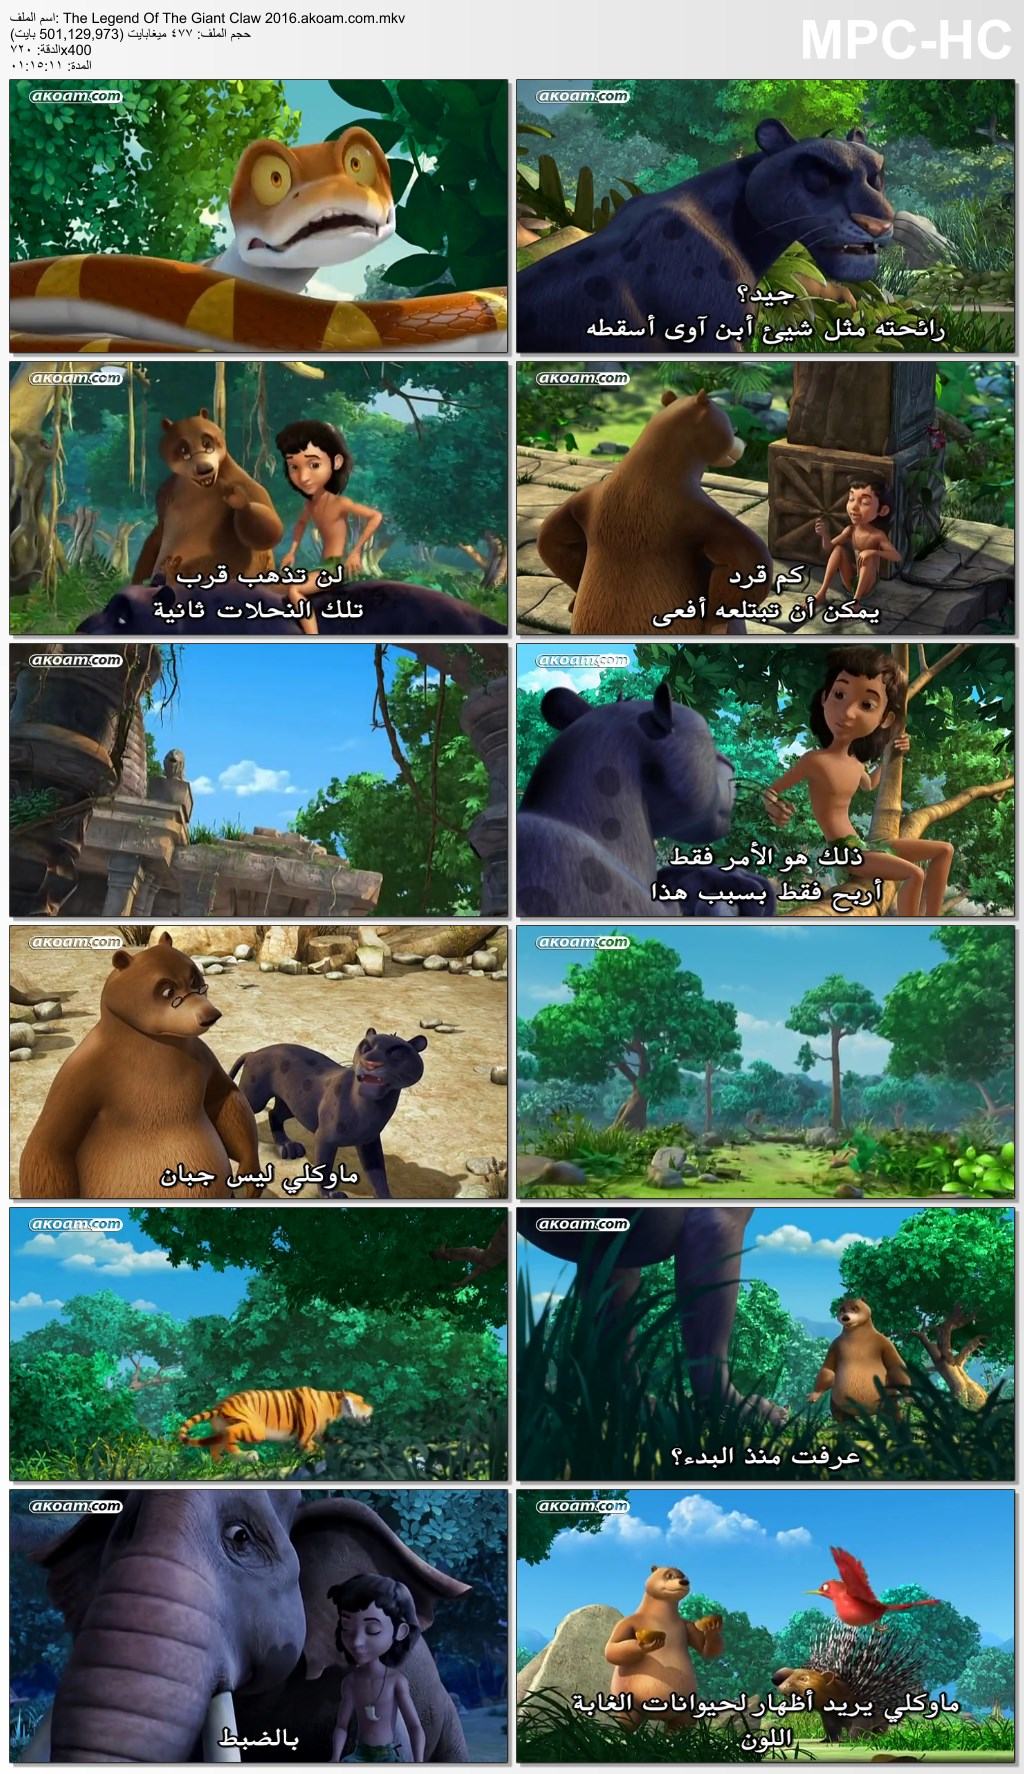 The Jungle Book The Legend Of The Giant Claw,الانيميشن,الانمي,المغامرة,المغامرات,The Jungle Book,The Legend Of The Giant Claw